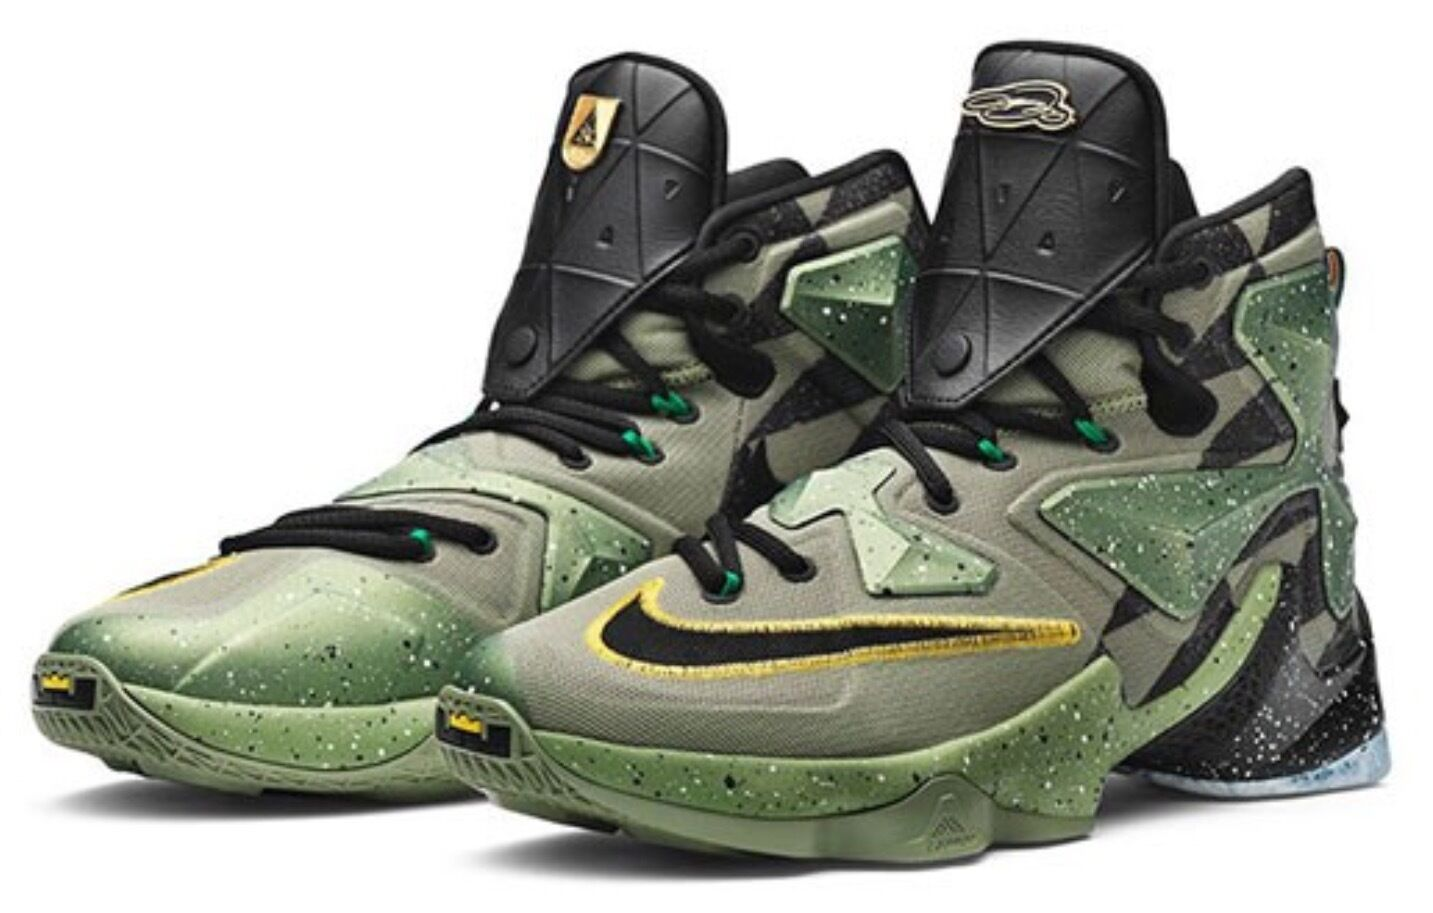 MEN NIKE 10 LEBRON JAMES XIII AS BASKETBALL SHOES SIZE 10 NIKE ALL-STAR GAME EDITION d819a8